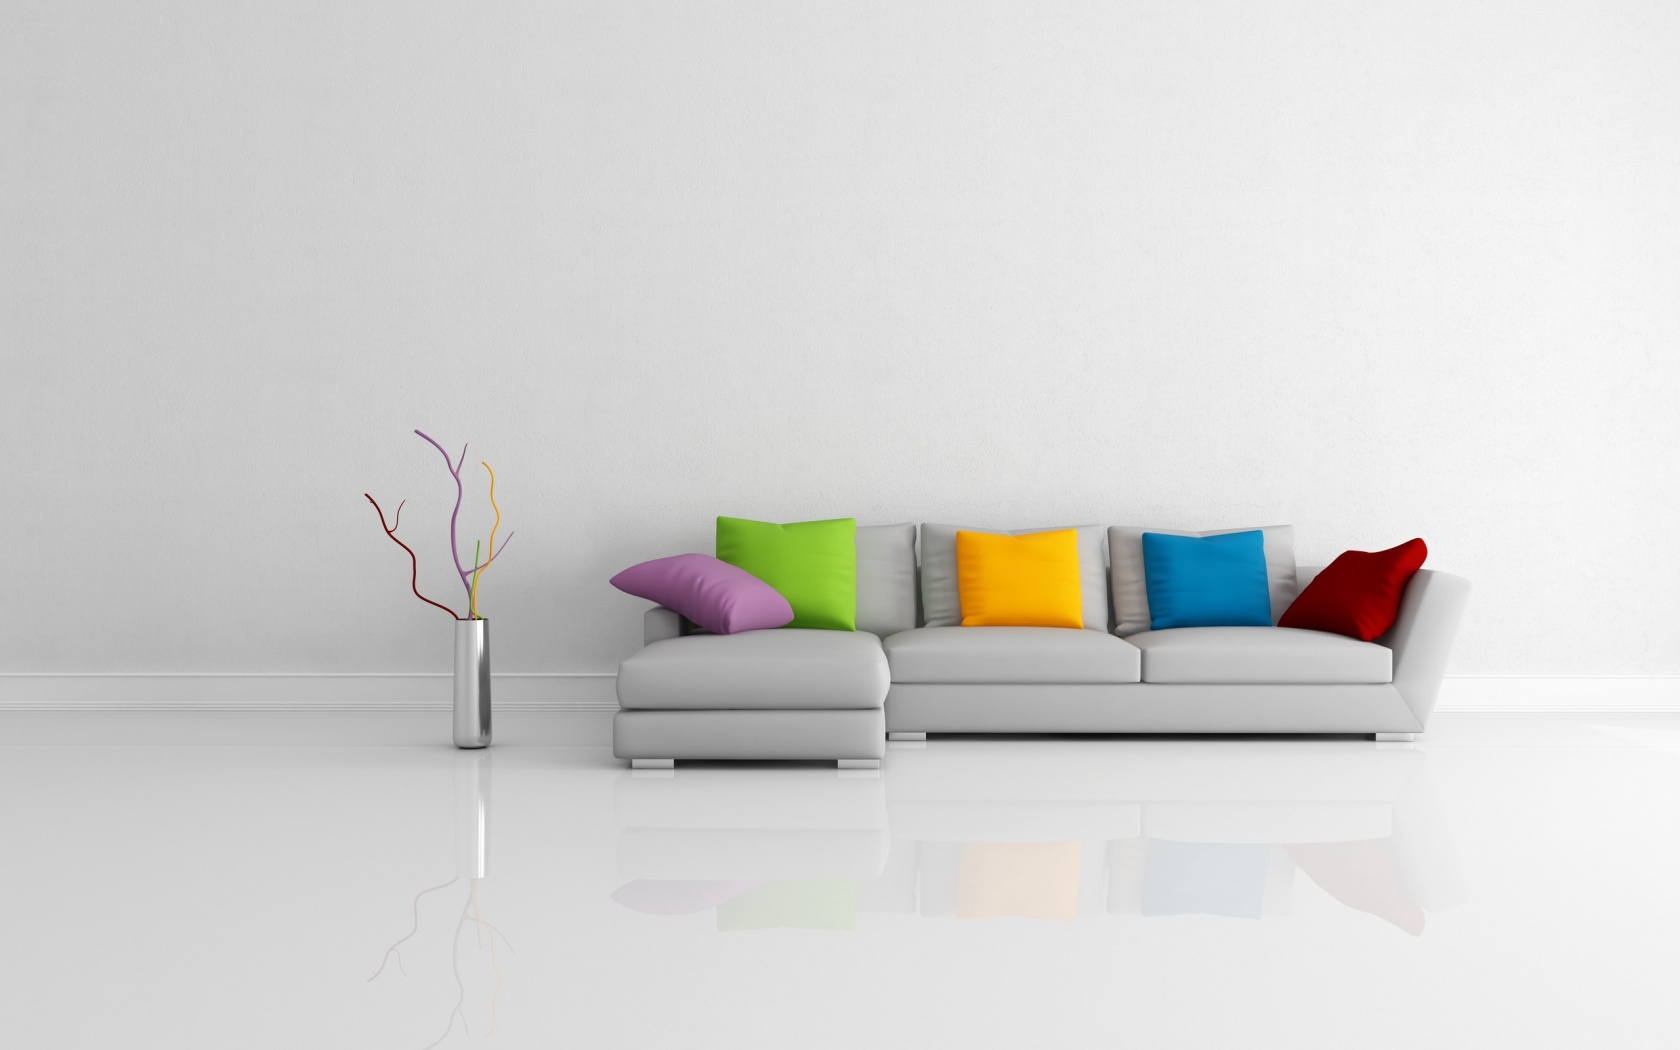 Modern Chair Pillows : Modern Sofa Colorful Pillows Wallpapers - 1680x1050 - 269209